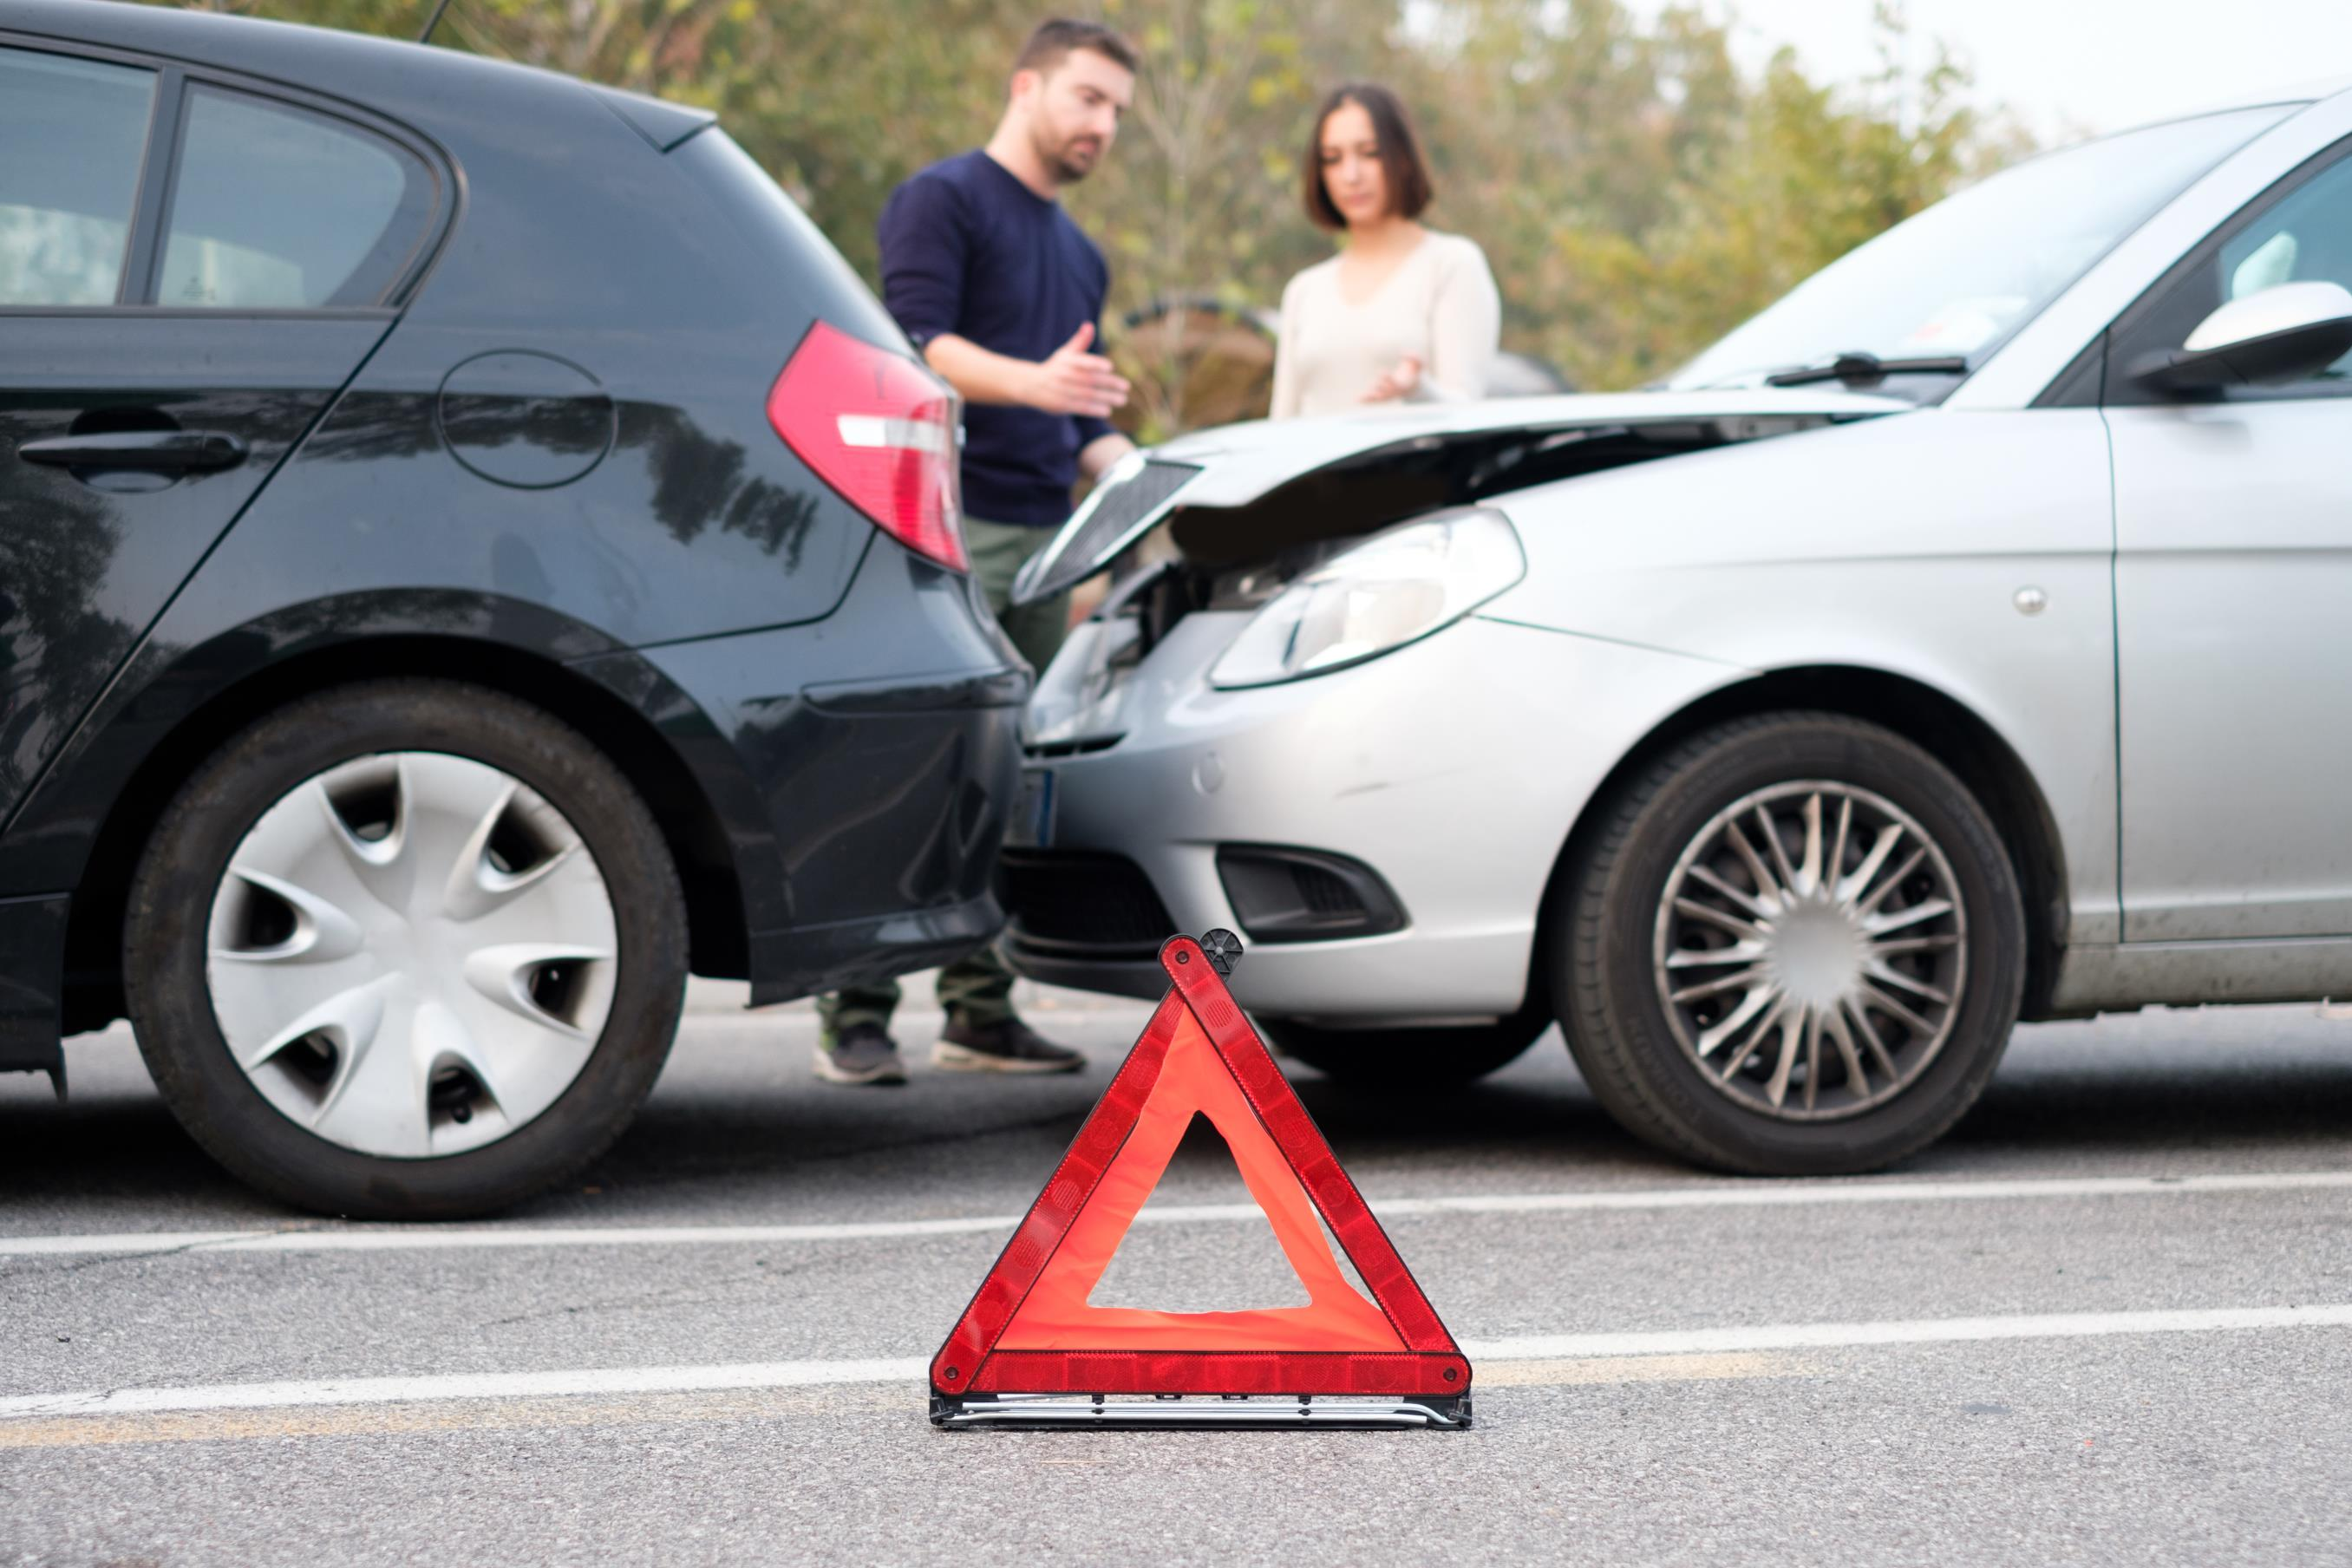 An accident needs to be reported to insurance providers, no matter how small